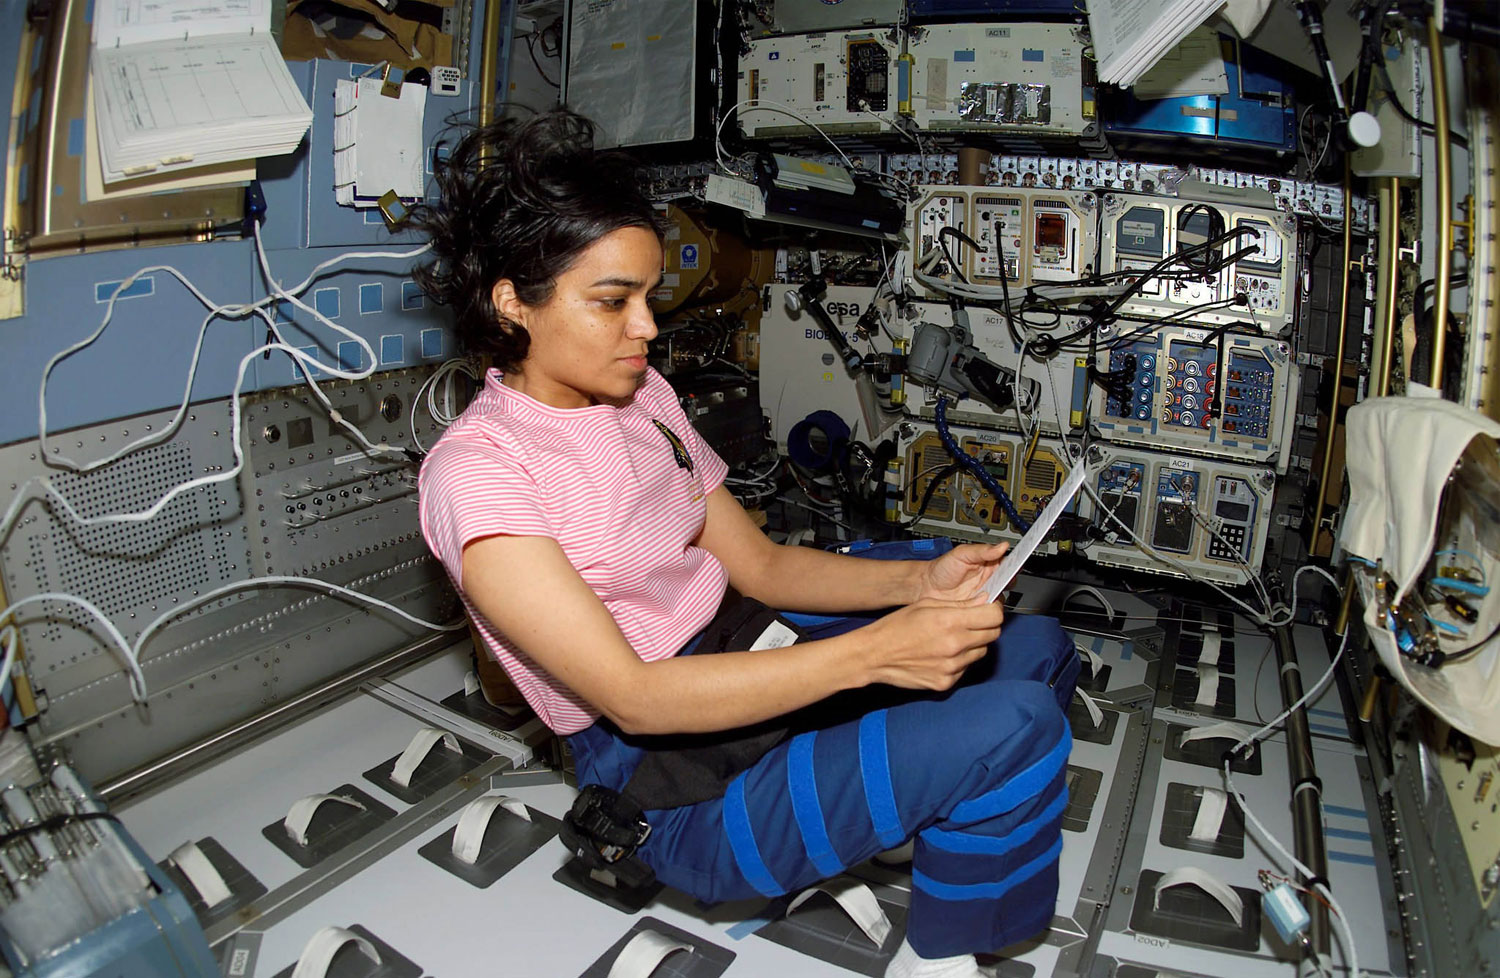 NASA astronaut Kalpana Chawla looks over a procedures checklist in the SPACEHAB Research Double Module aboard the Space Shuttle Columbia, on Jan. 27, 2003. Chawla was the first Indian-American astronaut and the first Indian woman to go to space. In 2003, Chawla was one of the seven crew members who perished in the Columbia disaster.